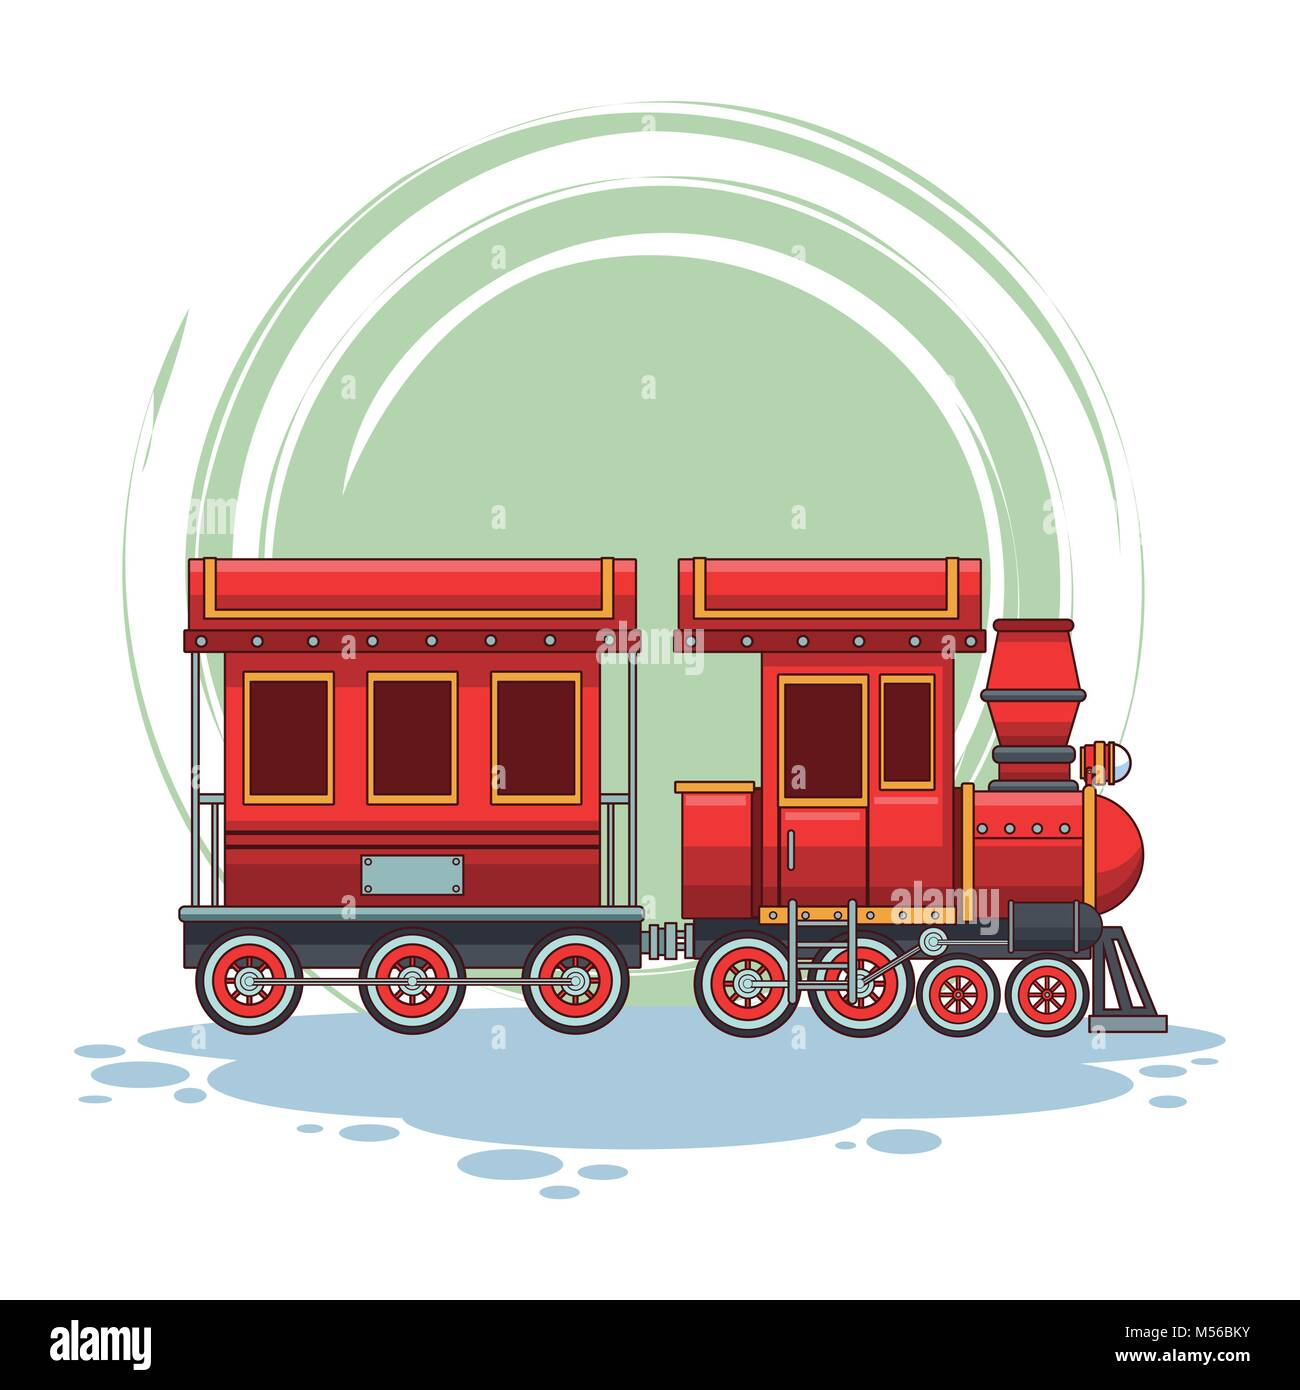 Train riding cartoon - Stock Image